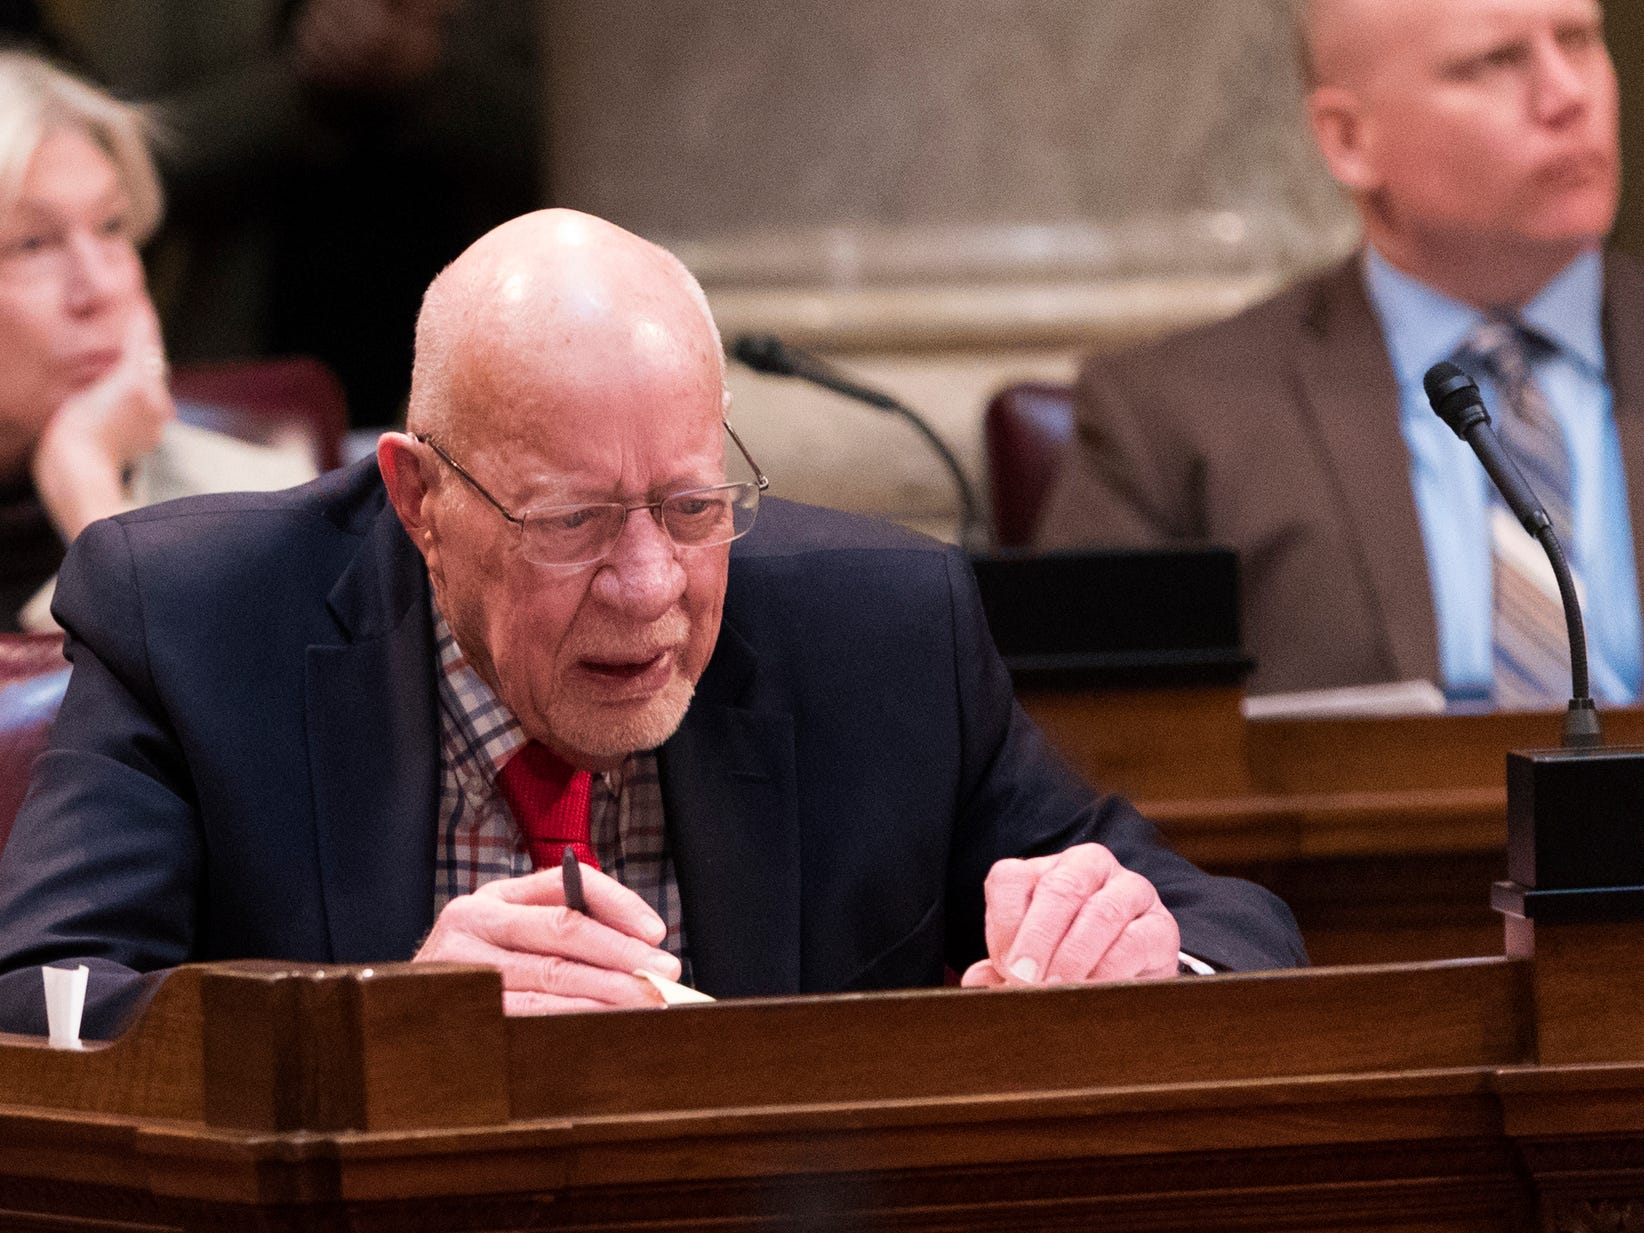 State Sen. Fred Risser, D-Madison, is shown on the Senate floor at the Capitol in Madison, Wis.